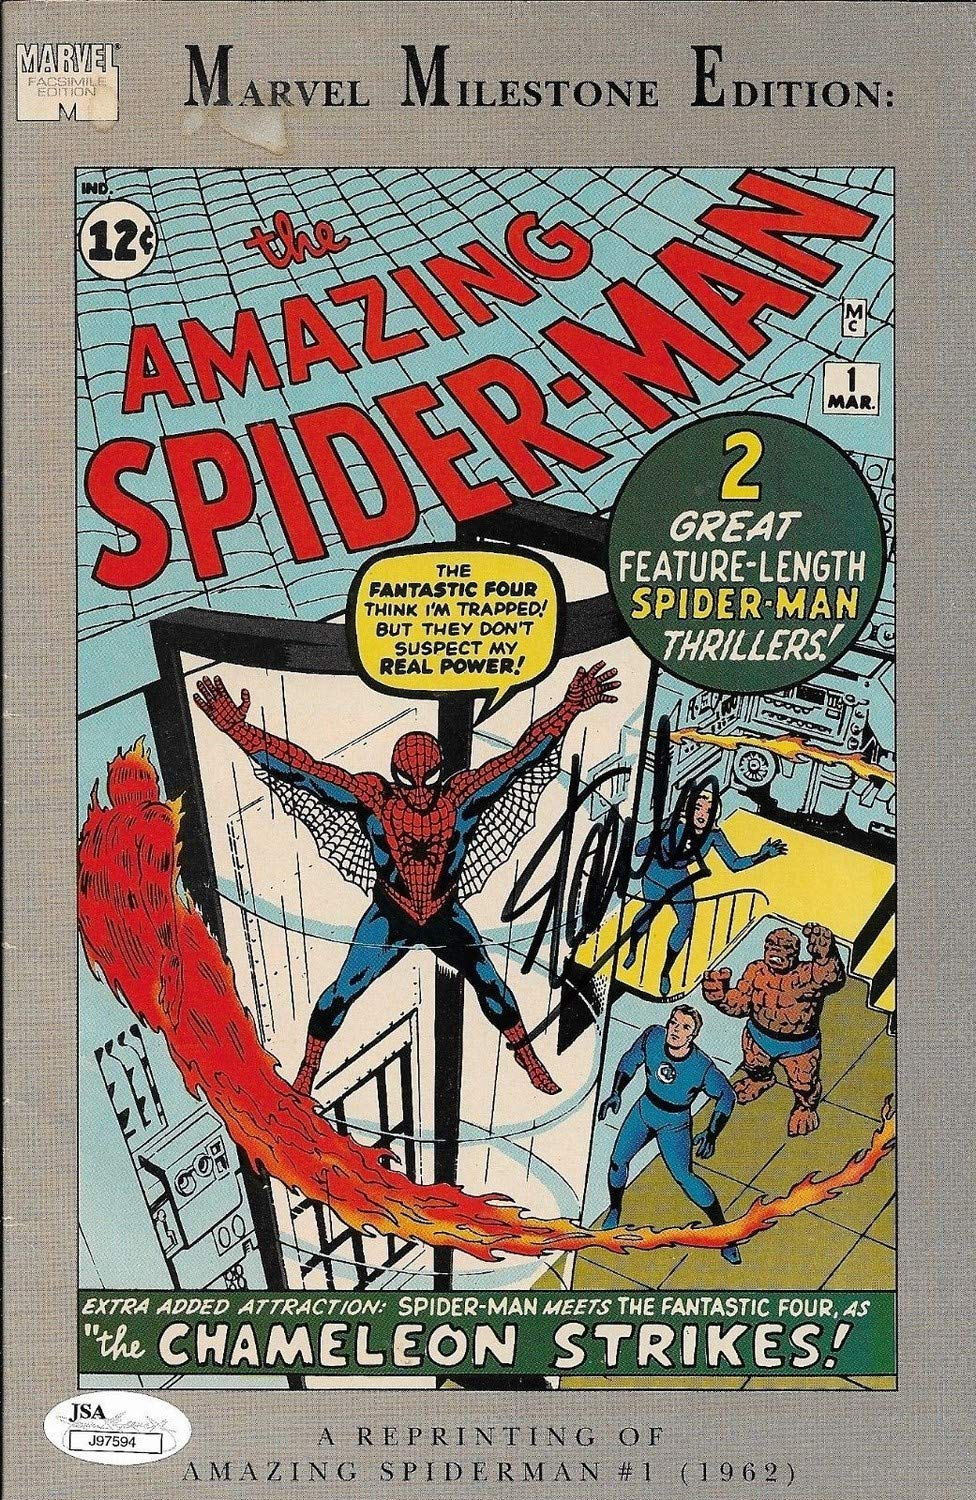 Stan Lee Autographed Signed The Amazing Spider Man Comic Book Reprint JSA Authentic